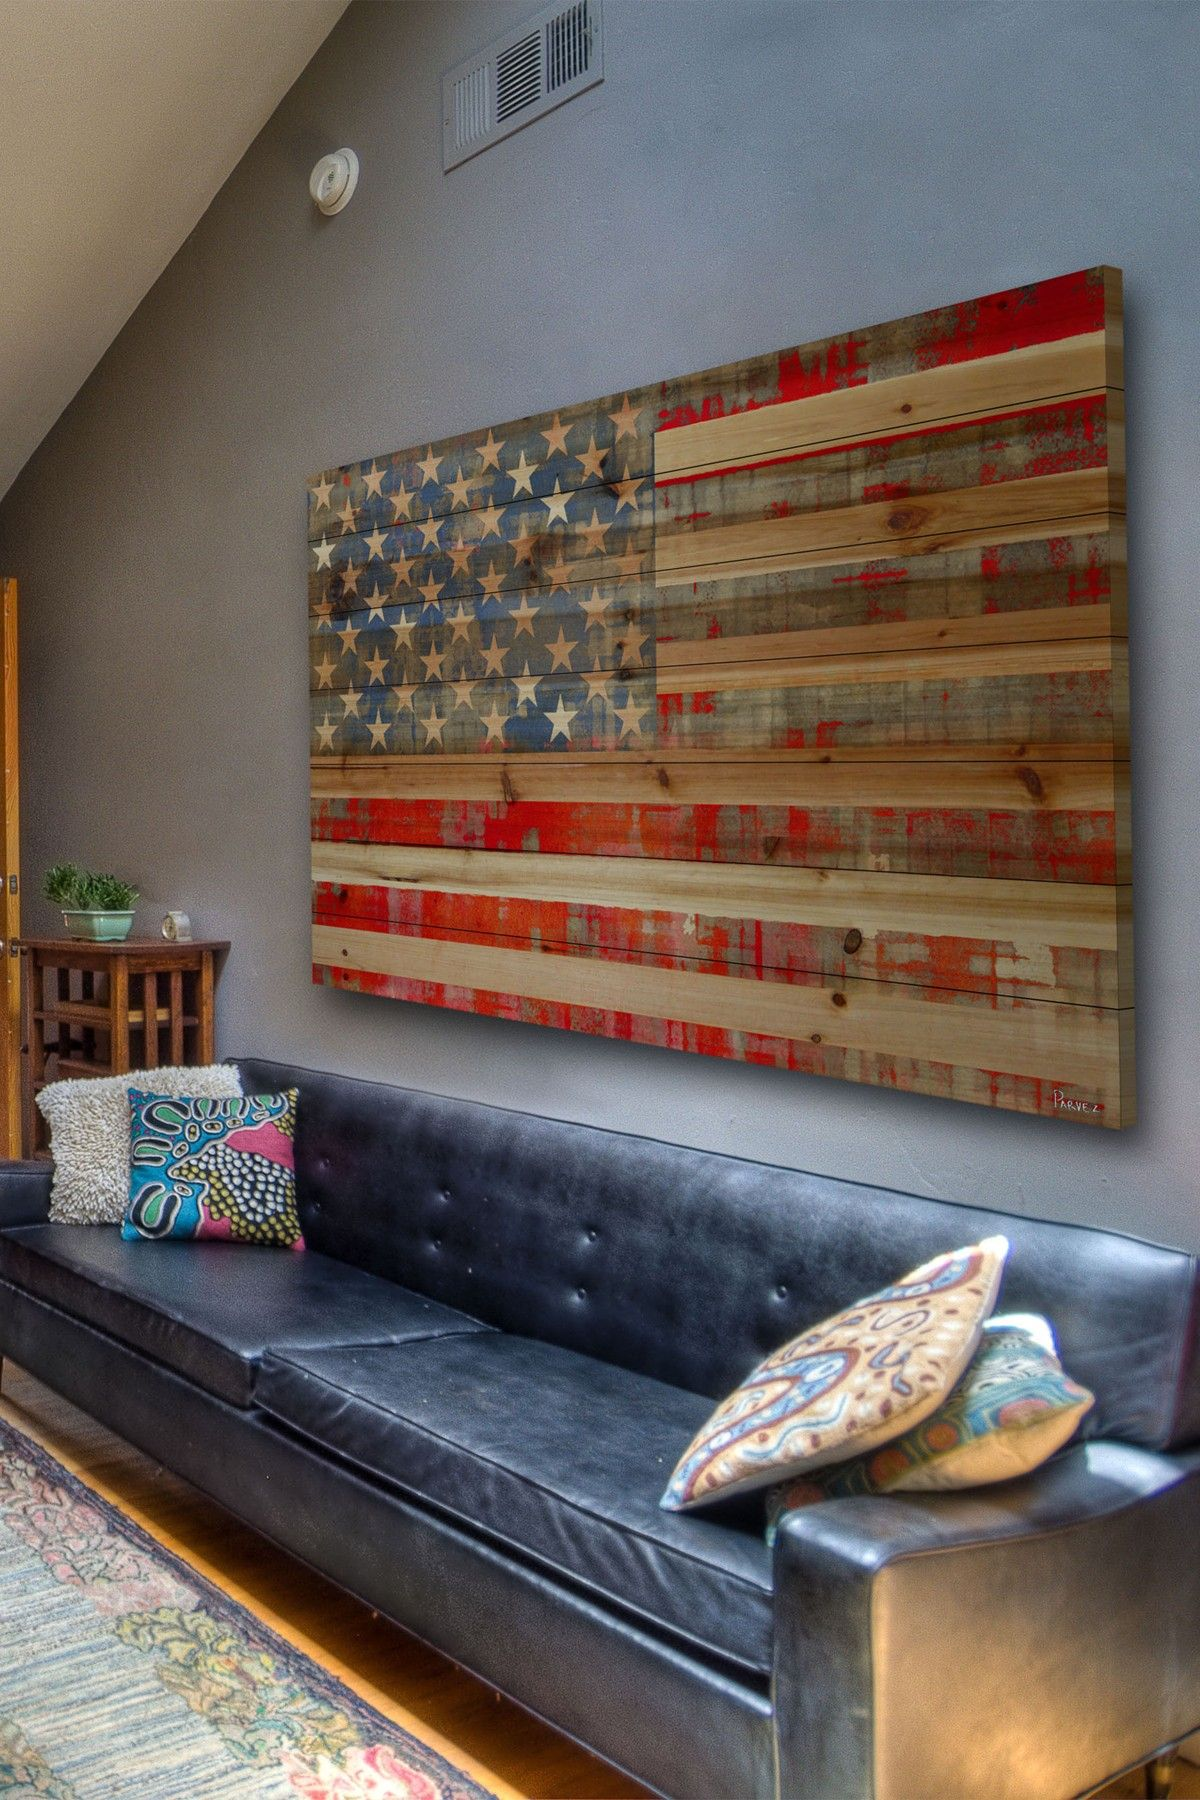 American Dream Wood Wall Art On Hautelook Do This With Pallets But With The Nashville Flag Instead Rustic American Flag Decor Decor Distressed Wood Wall